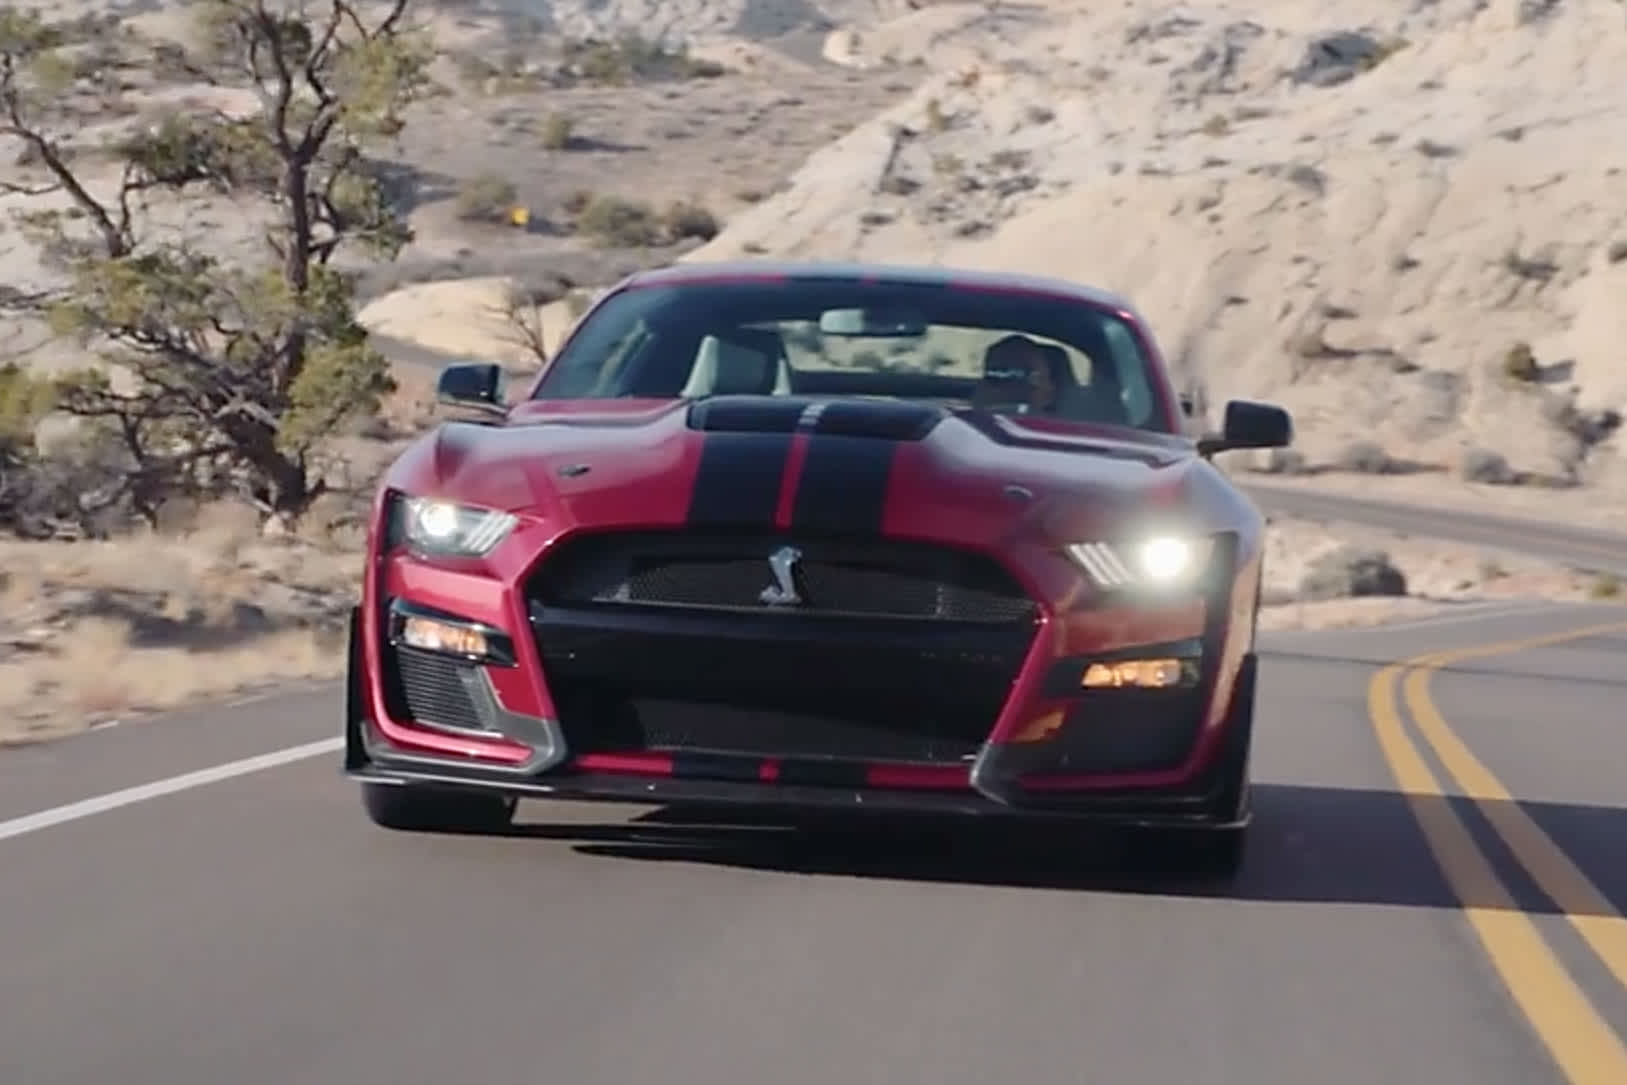 Ford reveals horsepower, torque for the new Mustang Shelby GT500, the 'most powerful street-legal Ford ever'